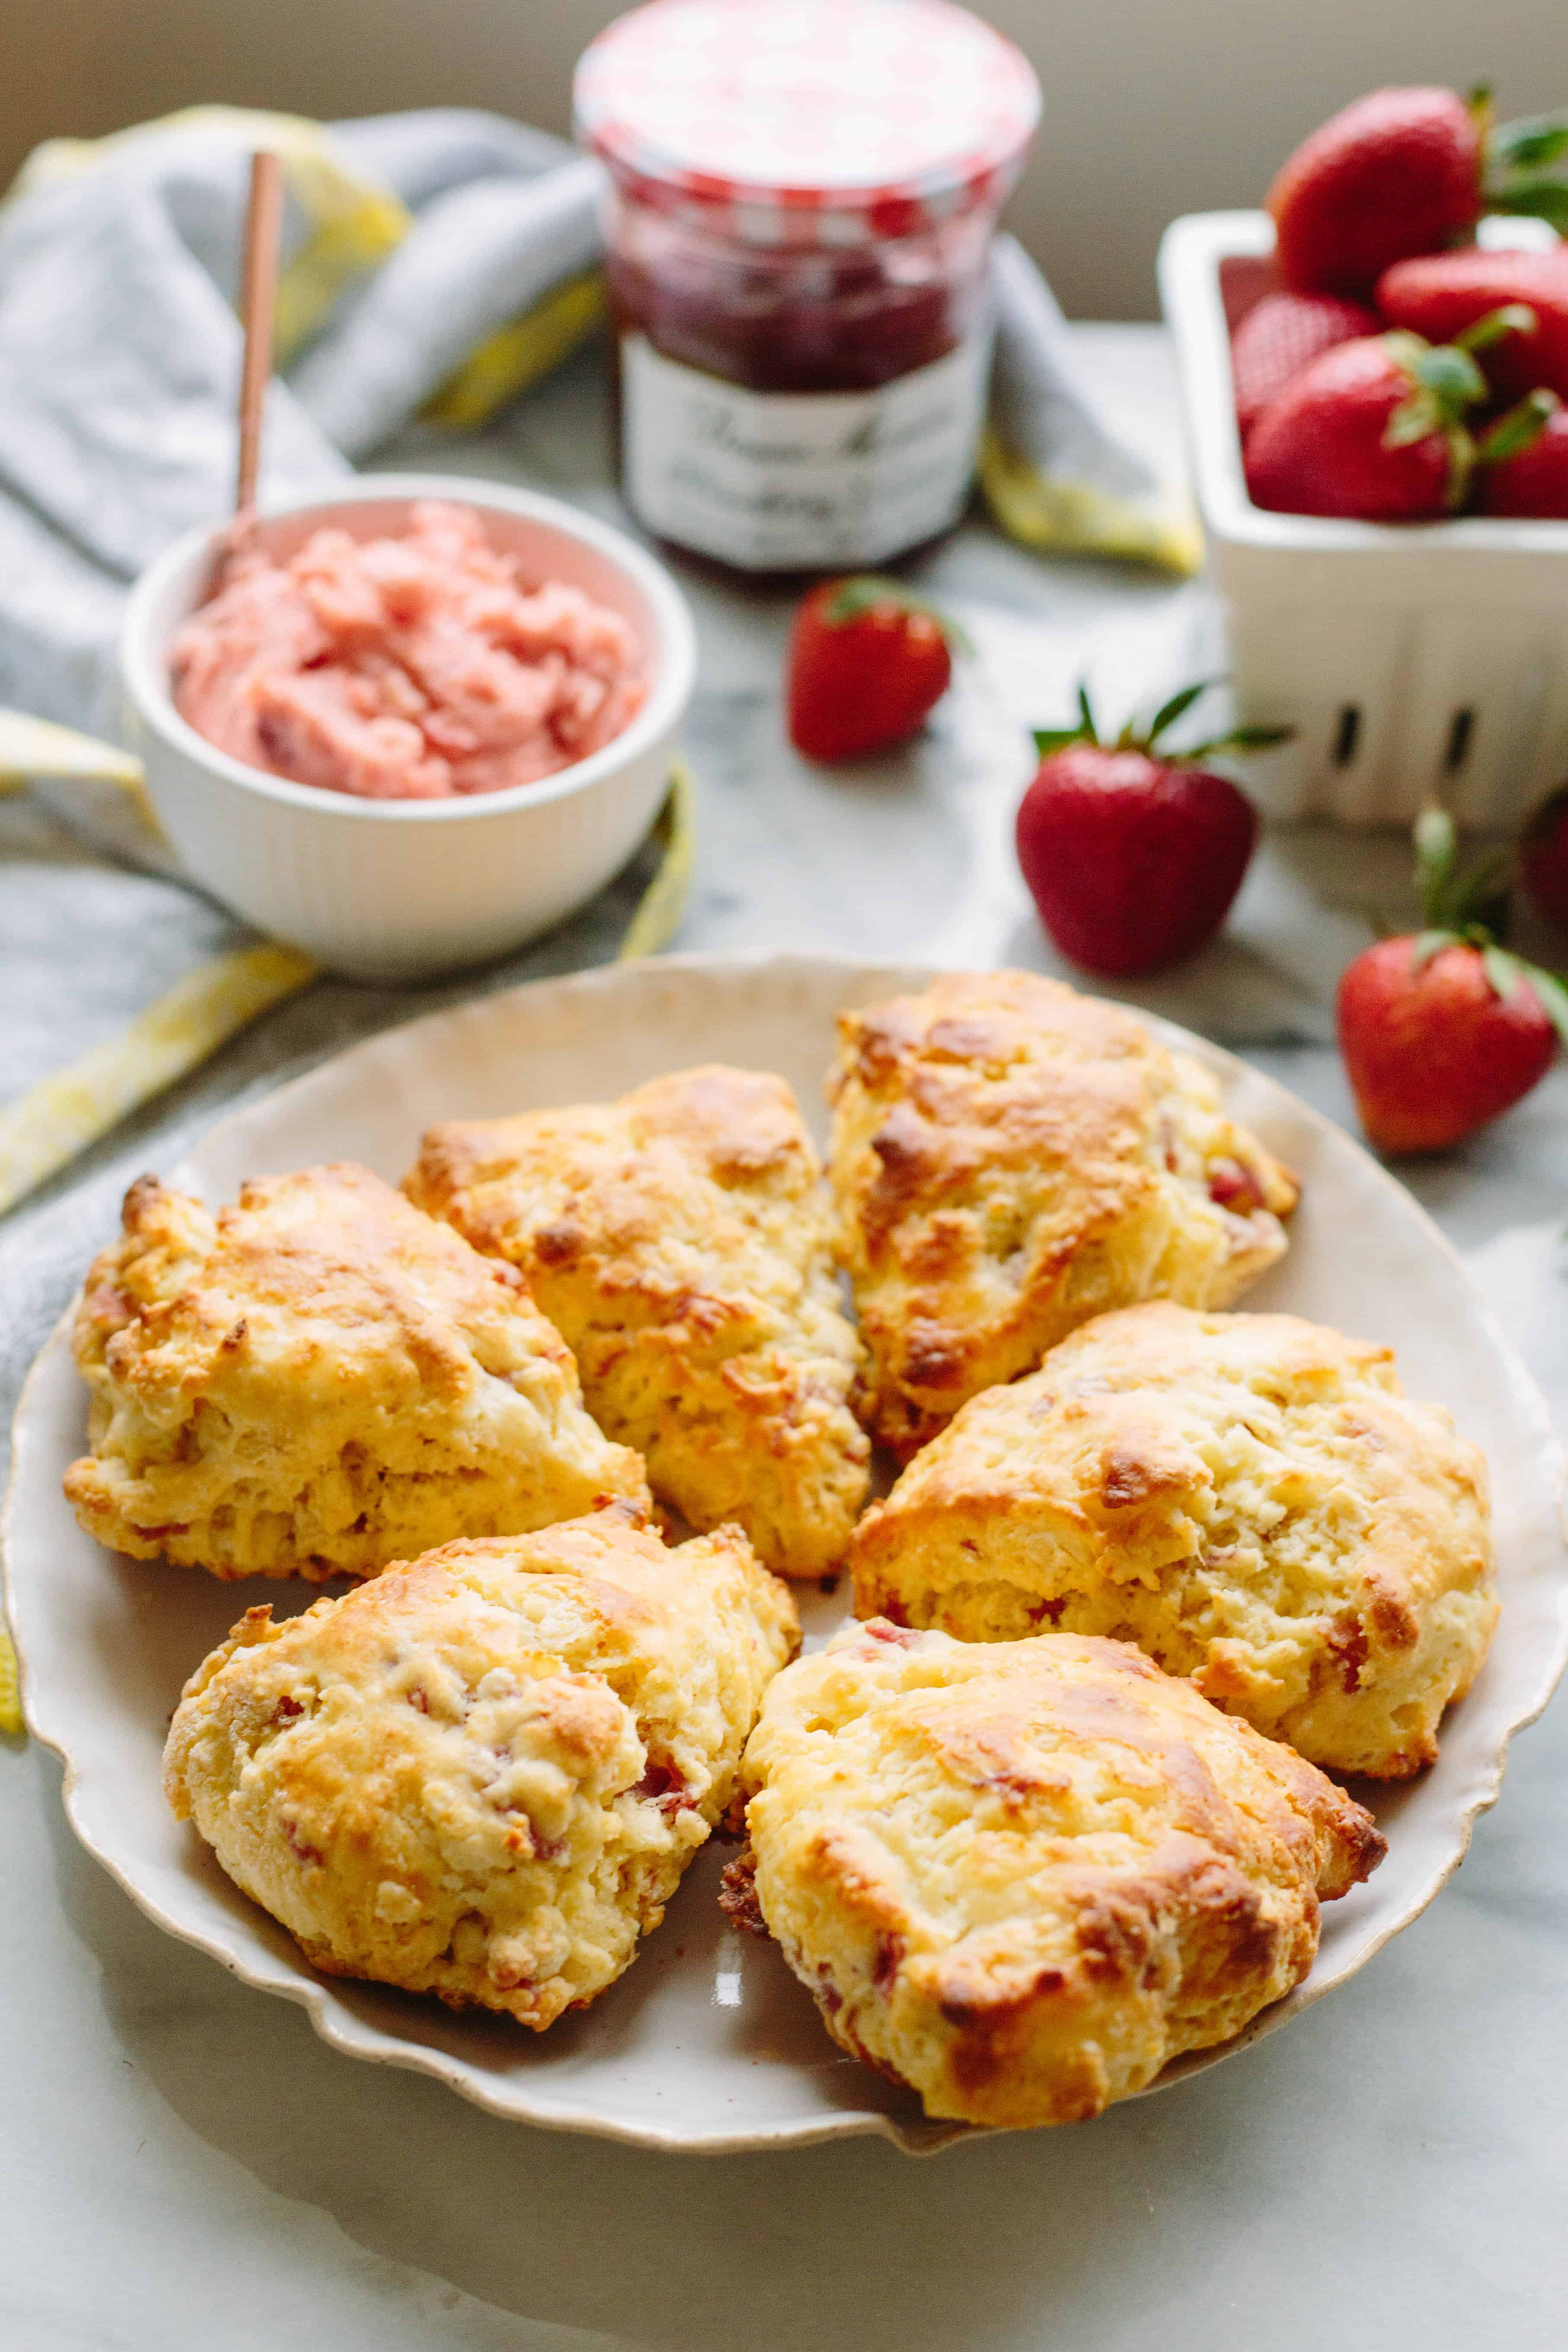 Six prosciutto goat cheese scones arranged in a circle on a white plate next to a bowl of strawberry butter.